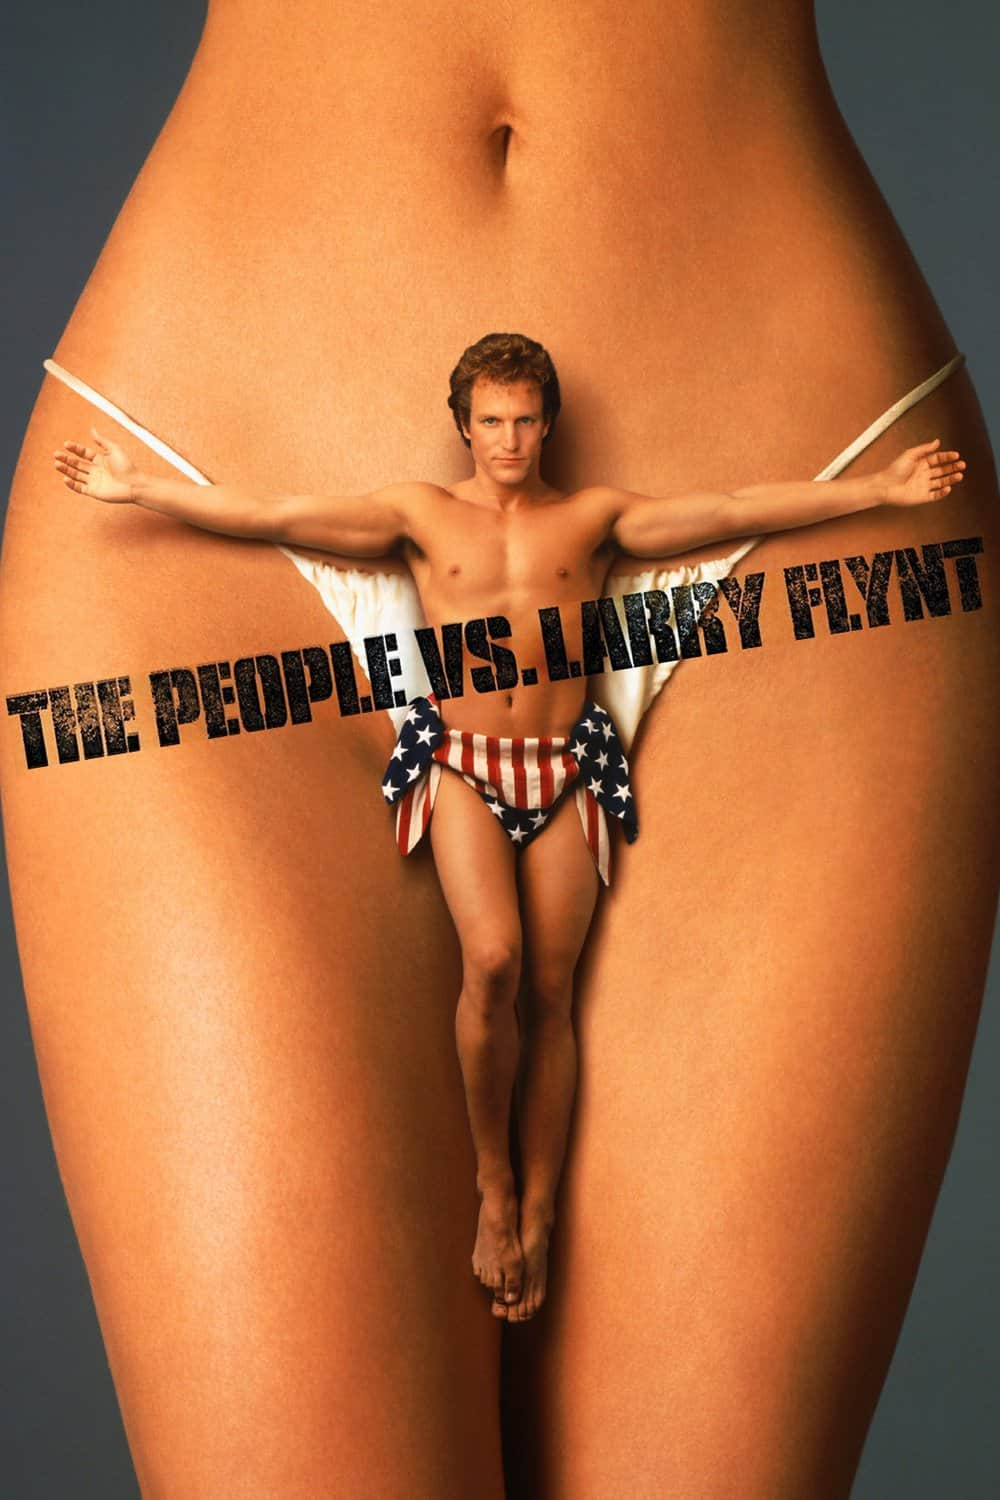 The People vs. Larry Flynt, 1996